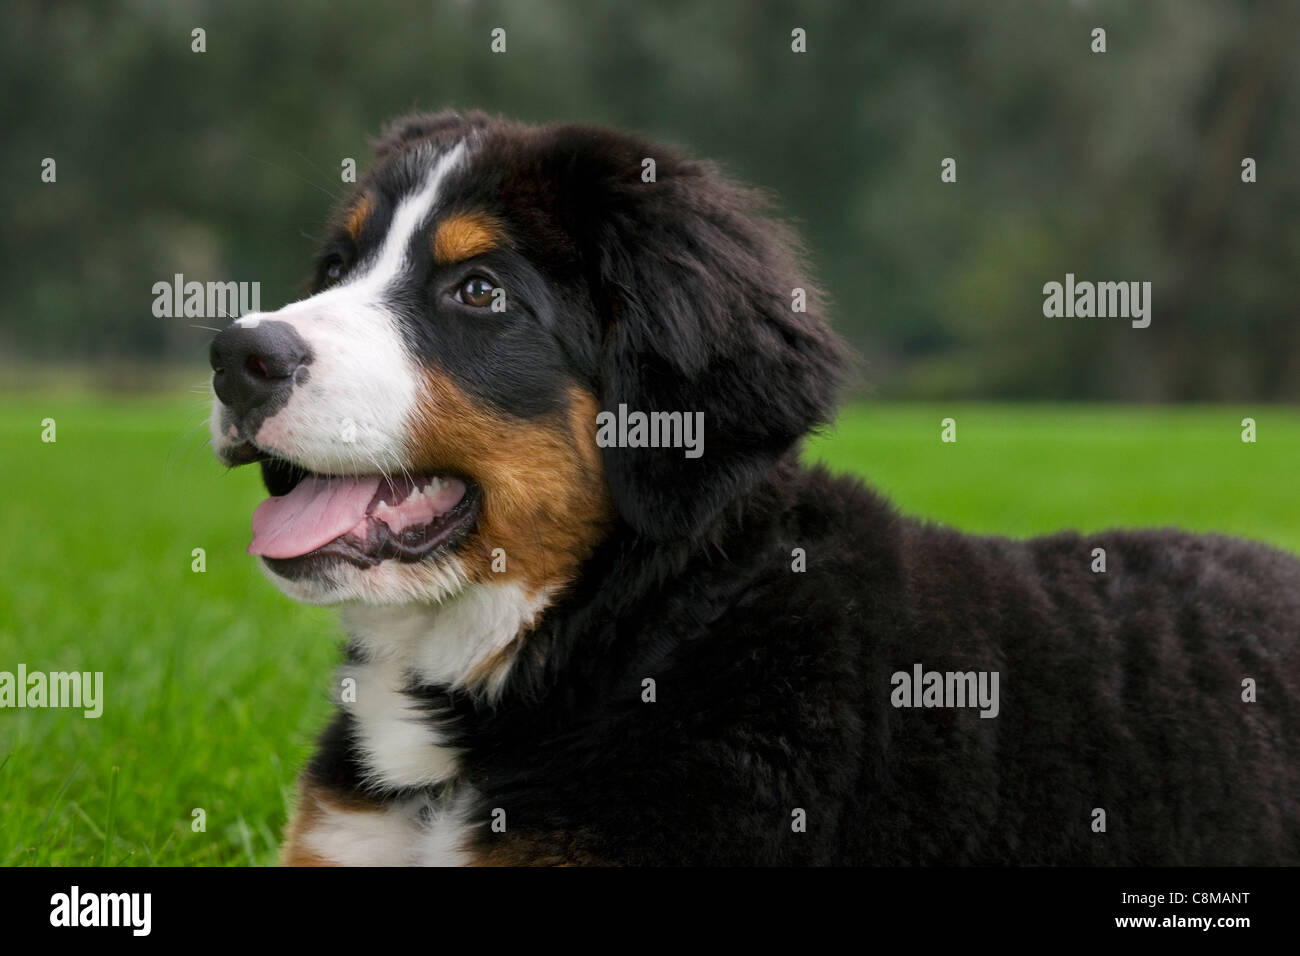 Bernese Mountain Dog / Berner Sennenhund (Canis lupus familiaris) close up in garden - Stock Image